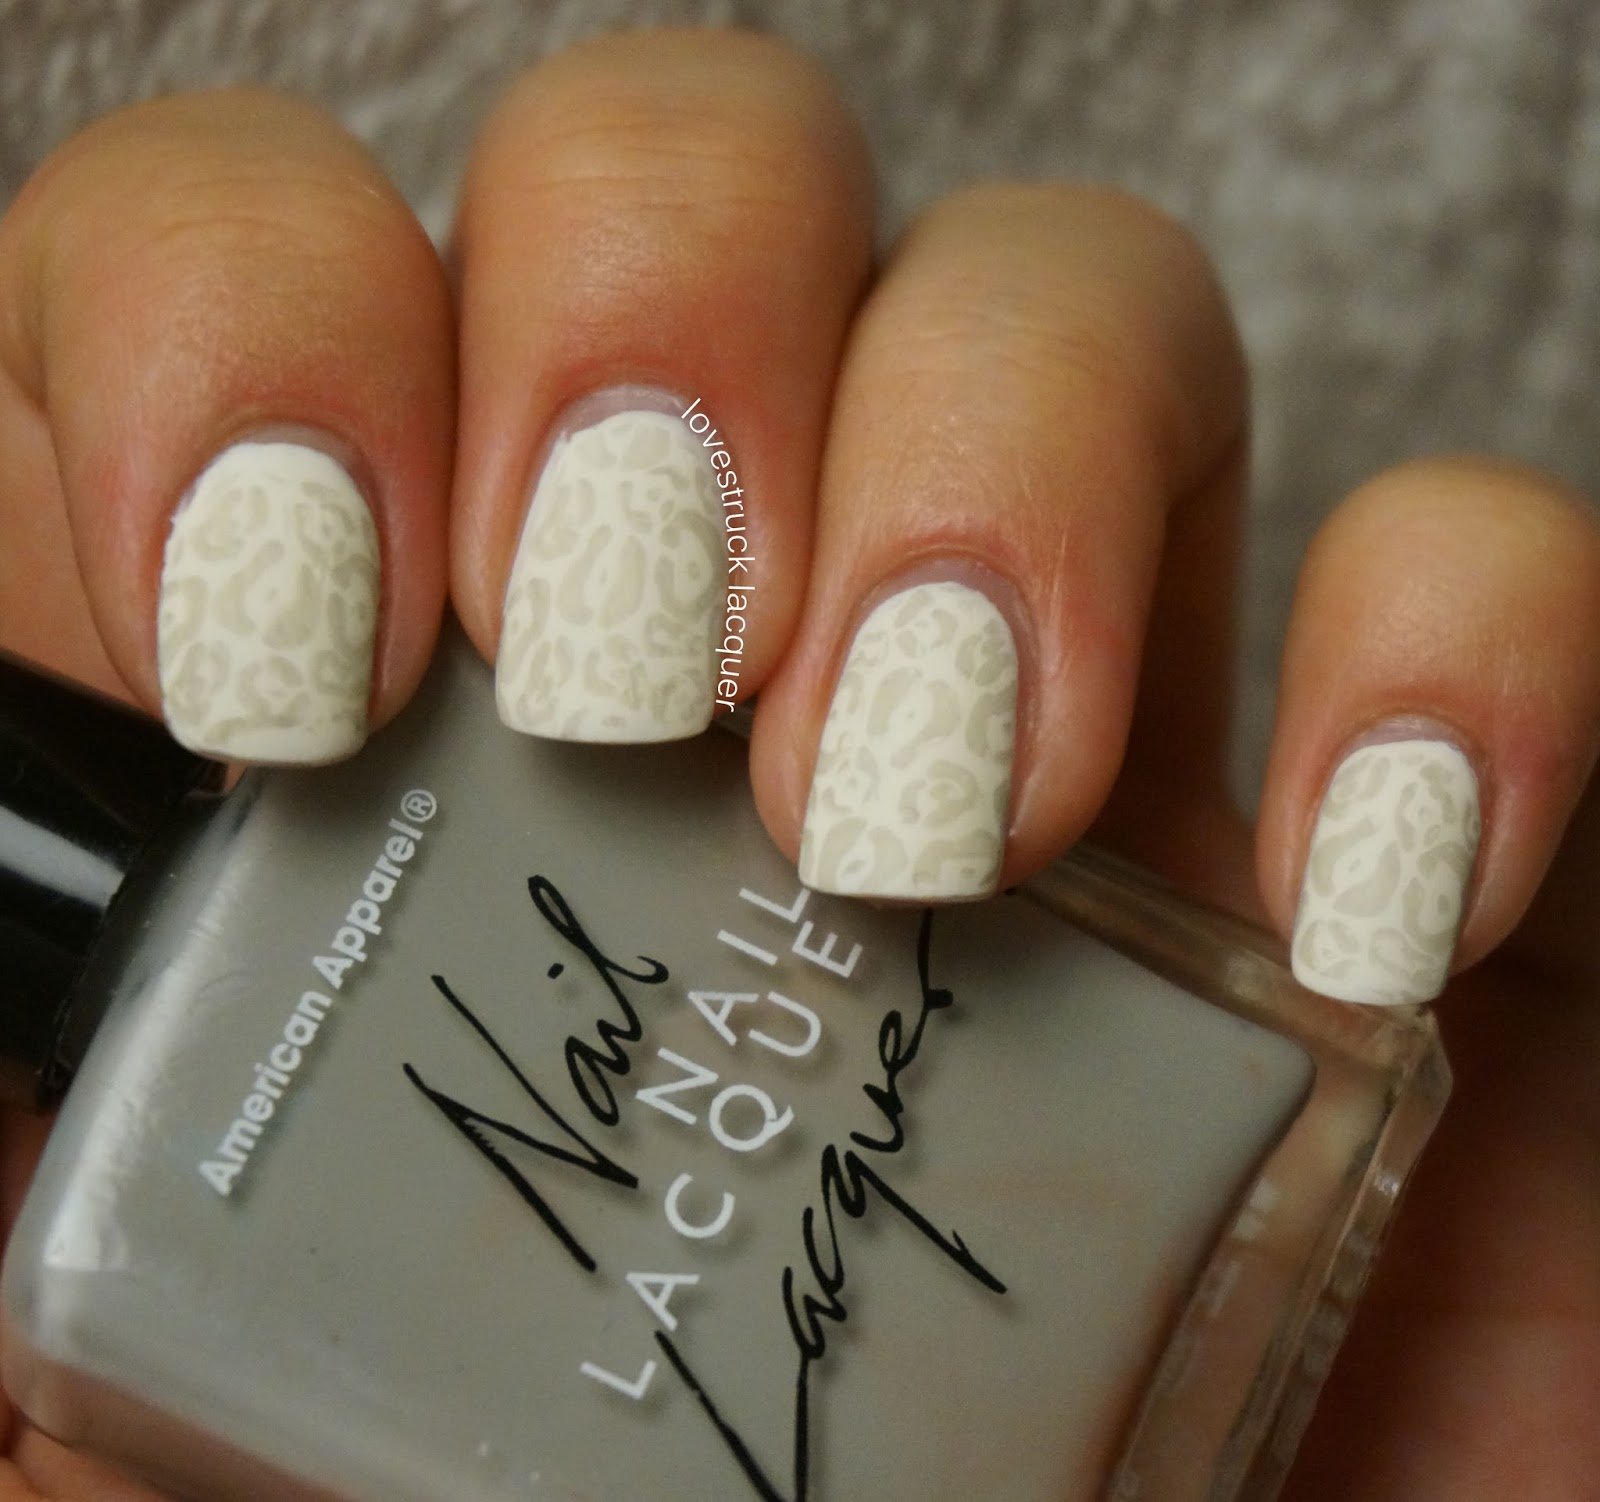 White Nail Polish In Winter: Lovestruck Lacquer: Busy Girl Nails Winter Nail Art